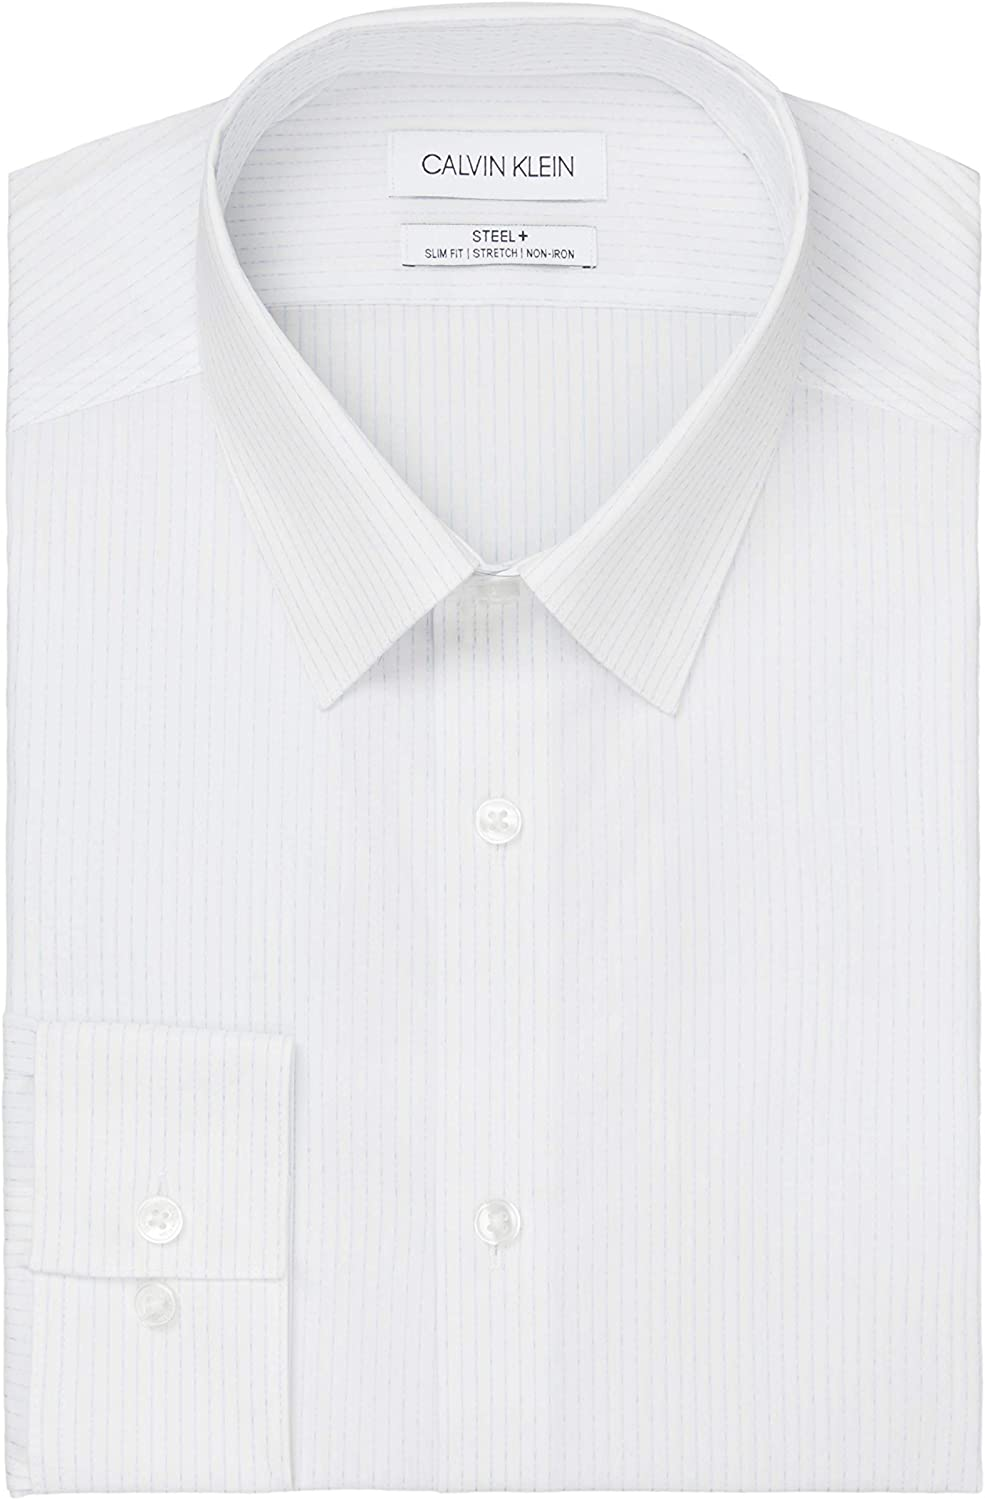 Calvin Klein Men's Dress Shirt Non Iron Slim Fit Stretch Stripe